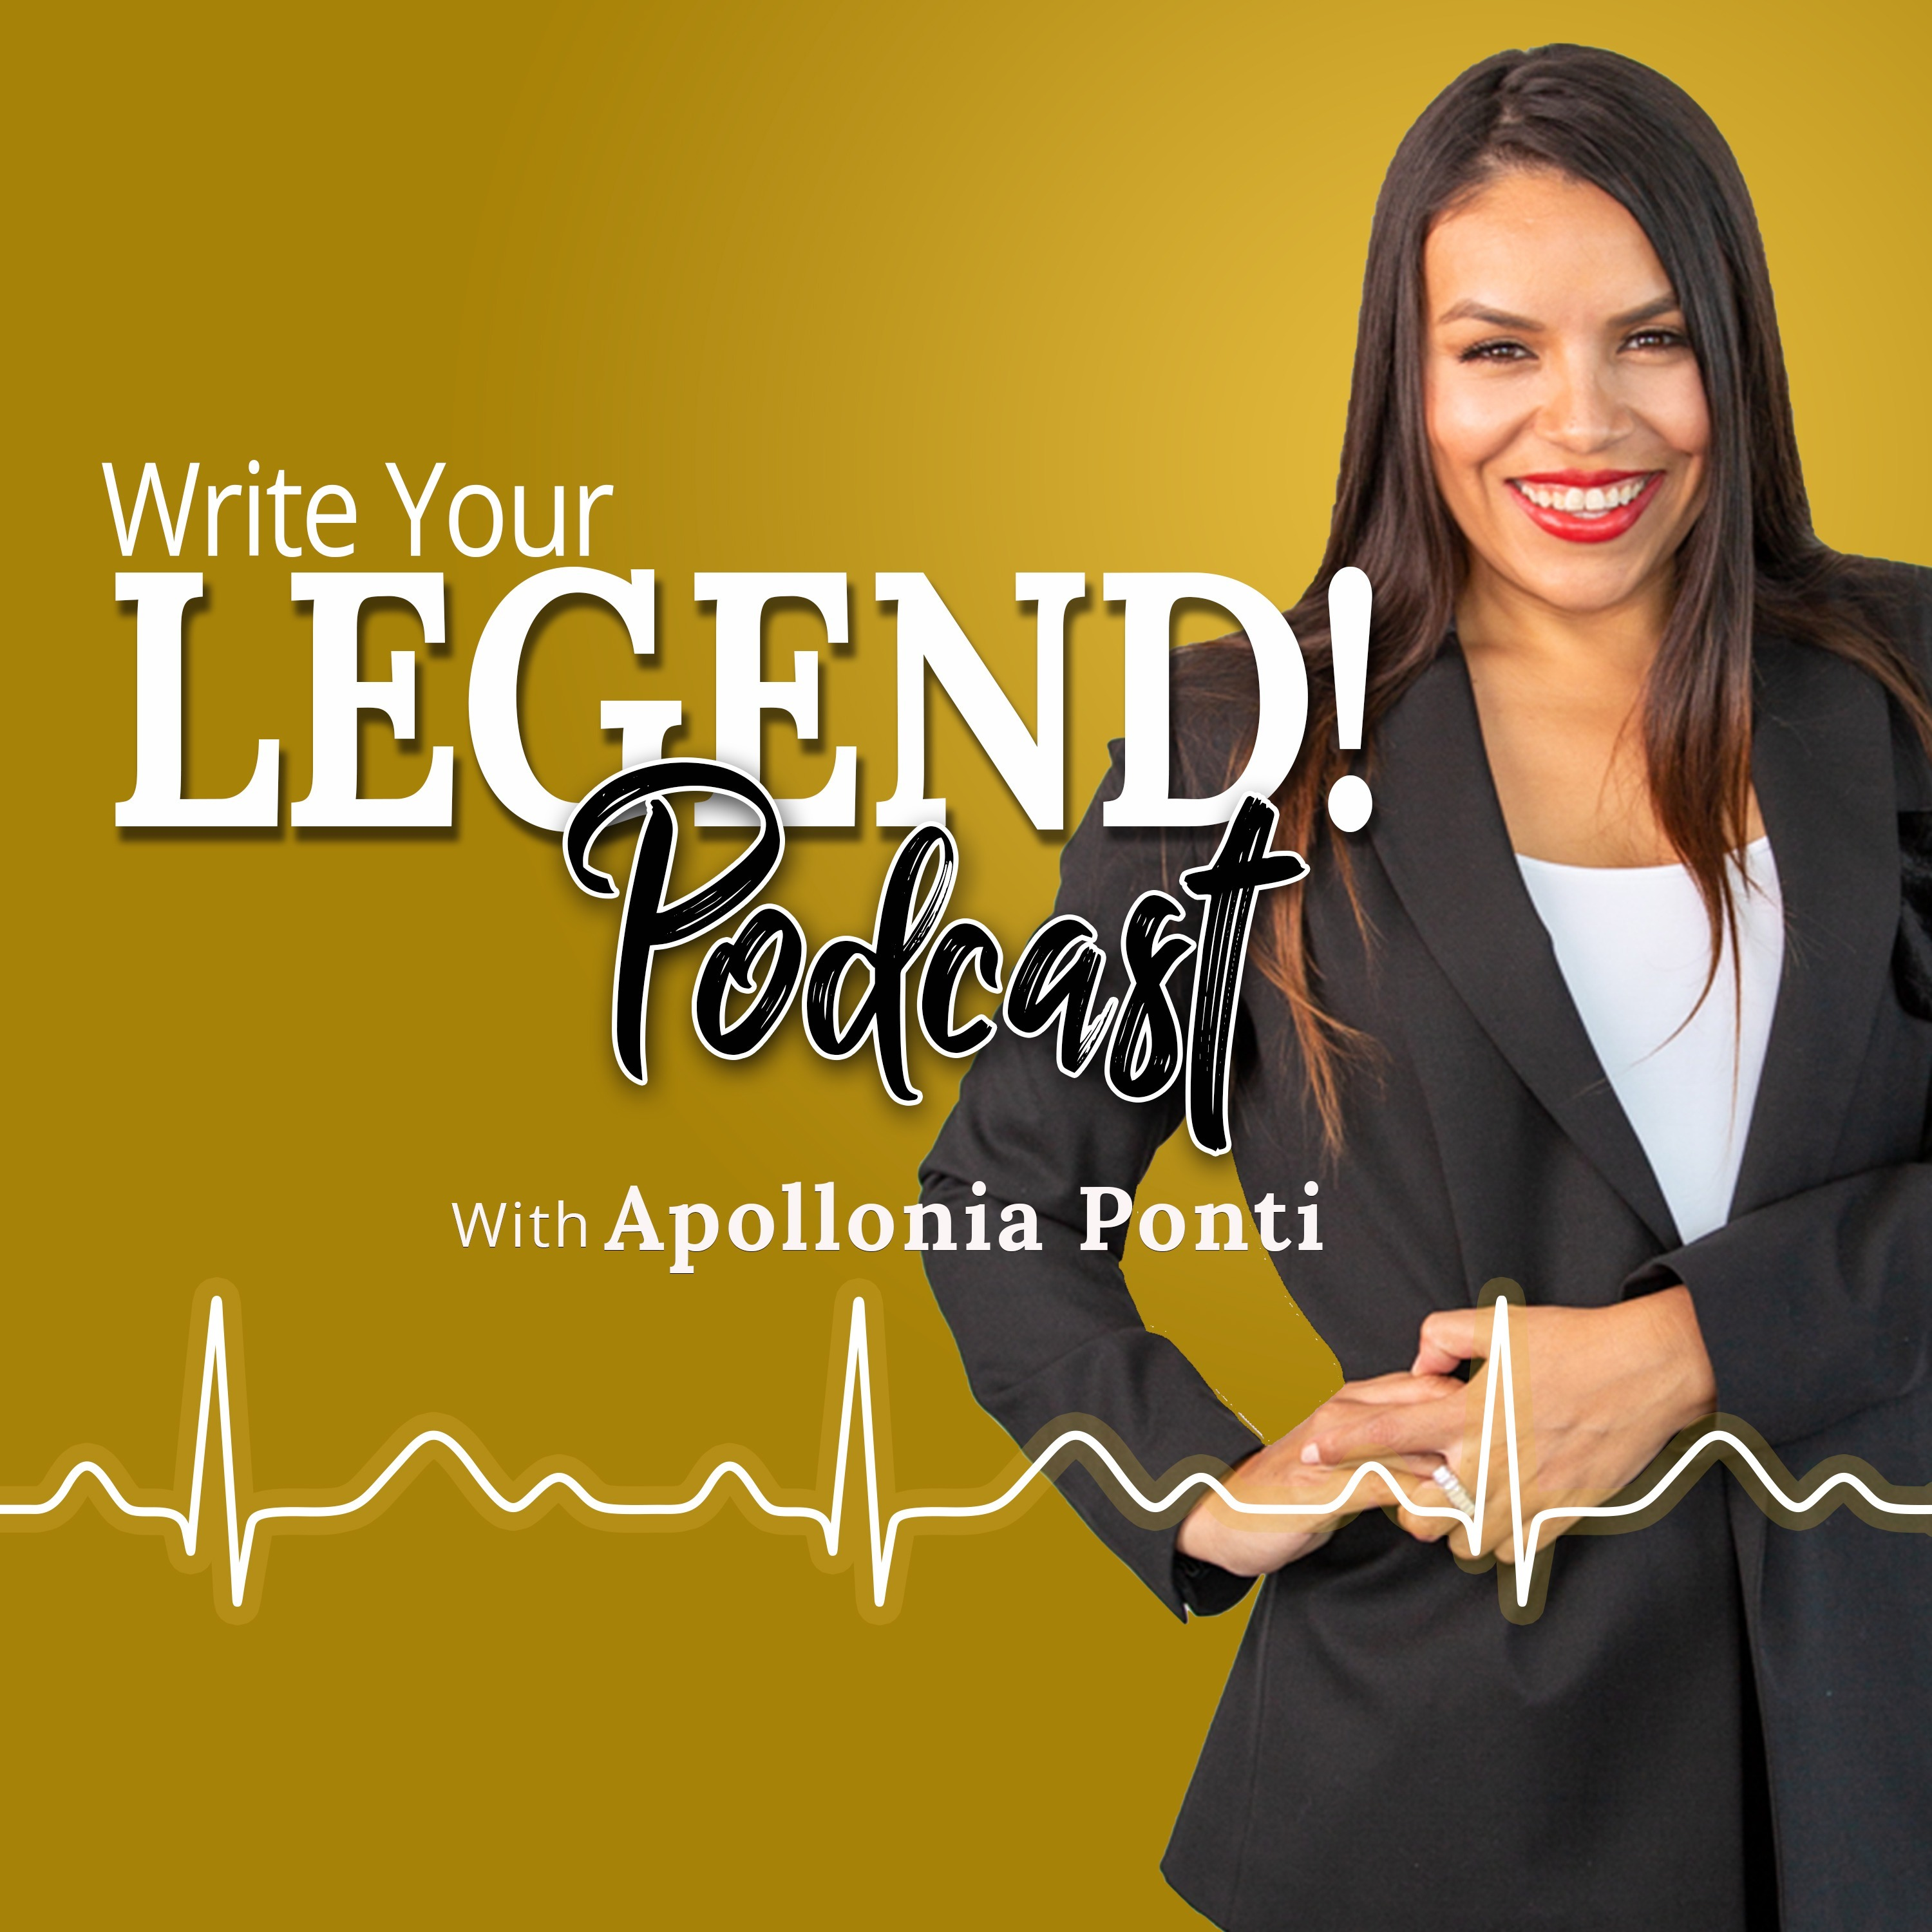 Why She Doesn't Want to Sleep with You! | Write Your Legend Podcast with Apollonia Ponti and Natalie Stavola show art